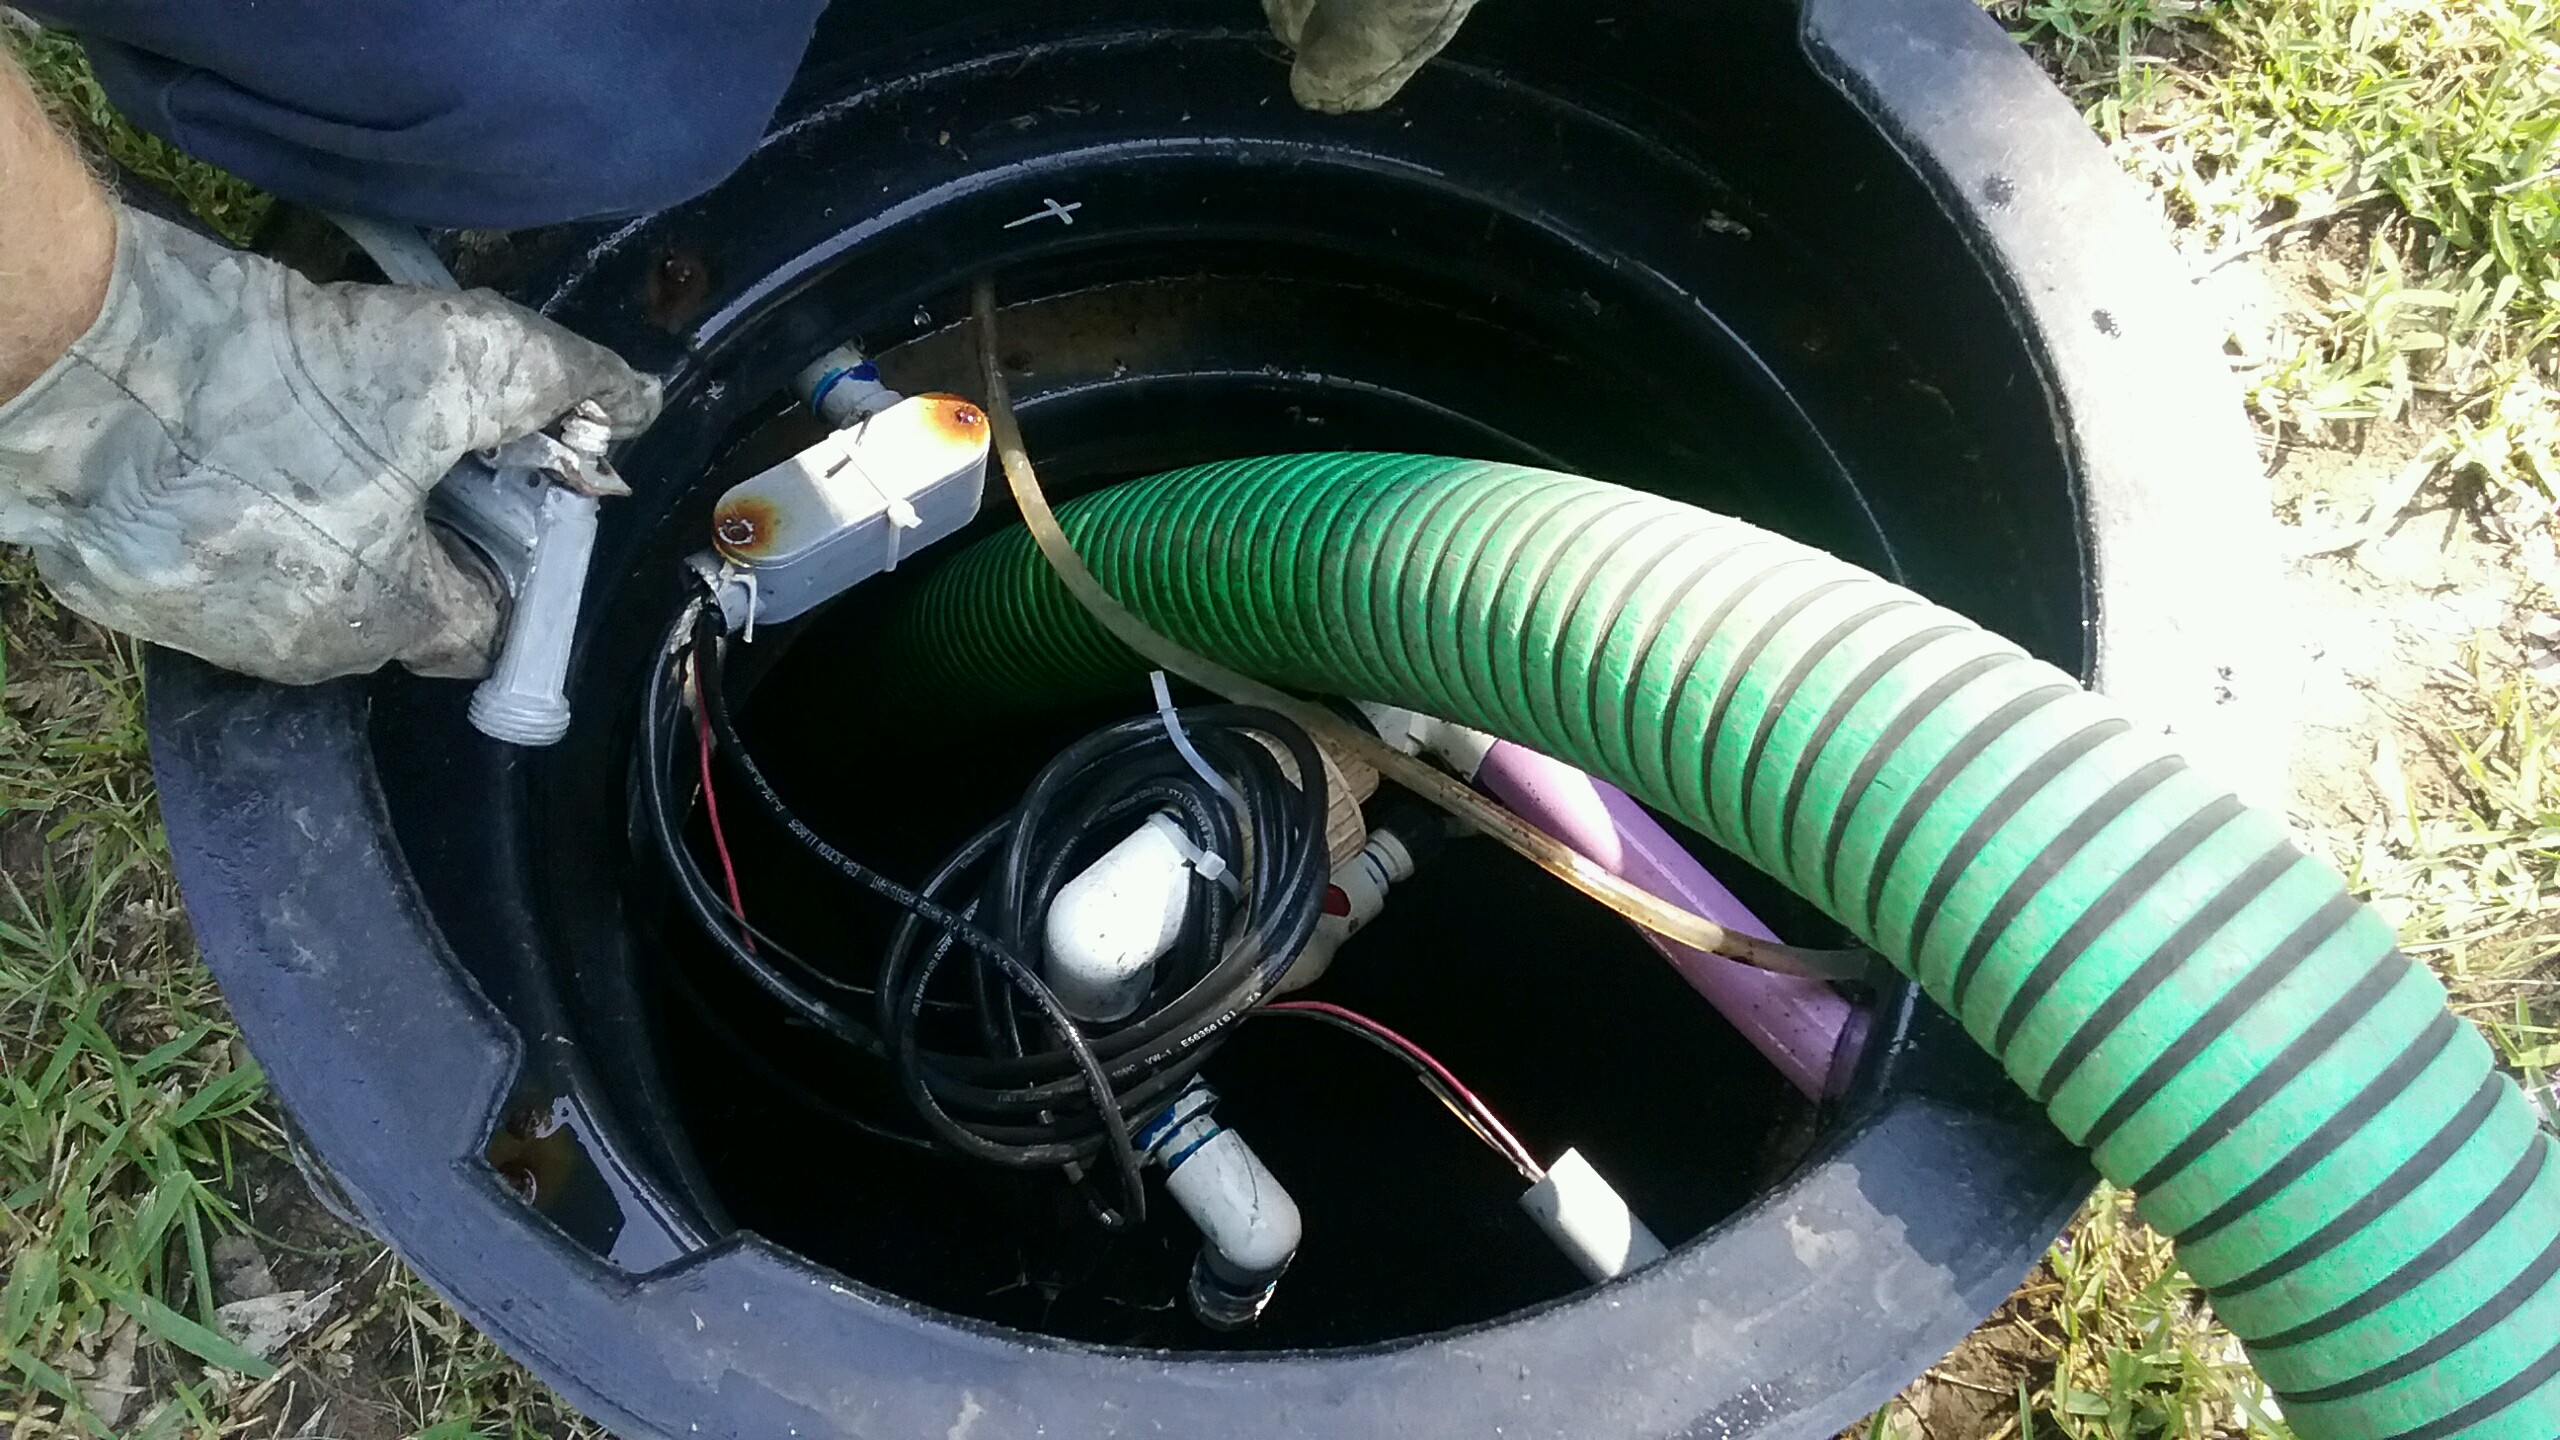 Best Septic Service that pumps septic tanks